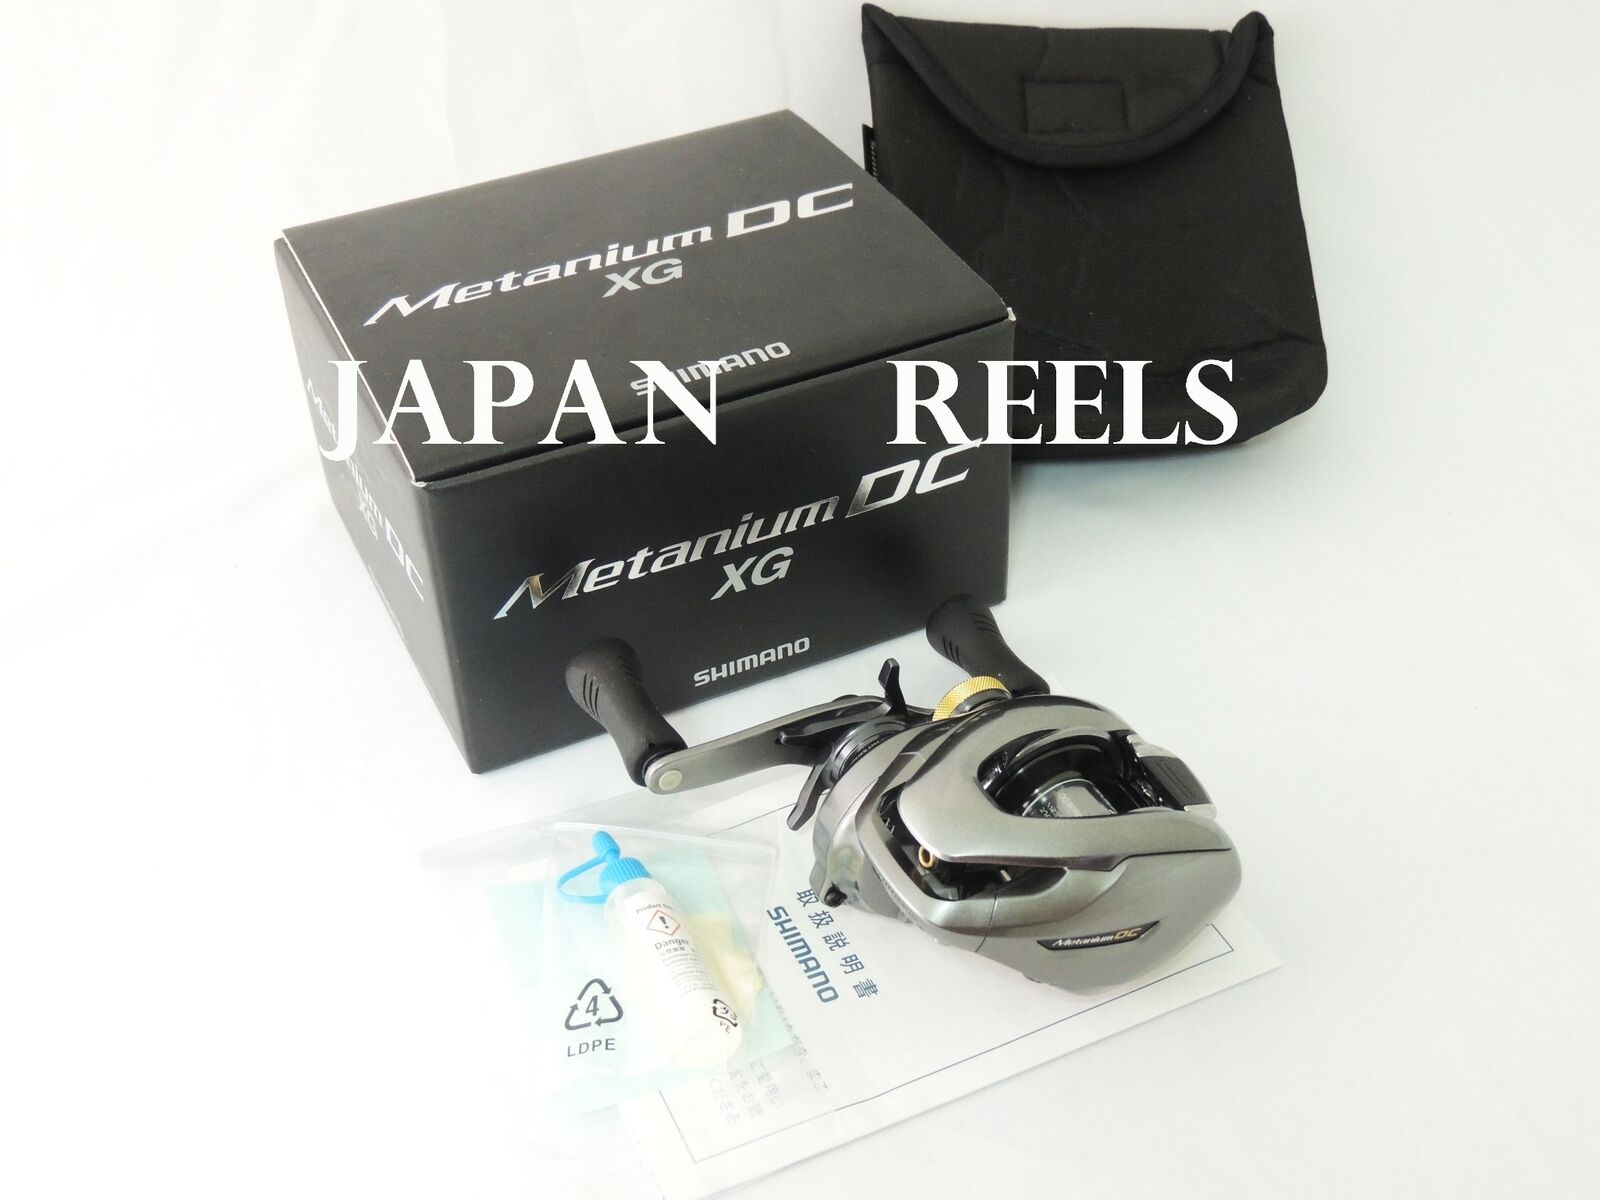 NEW SHIMANO 15 METANIUM DC XG RIGHT HAND (8.5 1) JAPAN 1-3 DAYS FAST DELIVERY